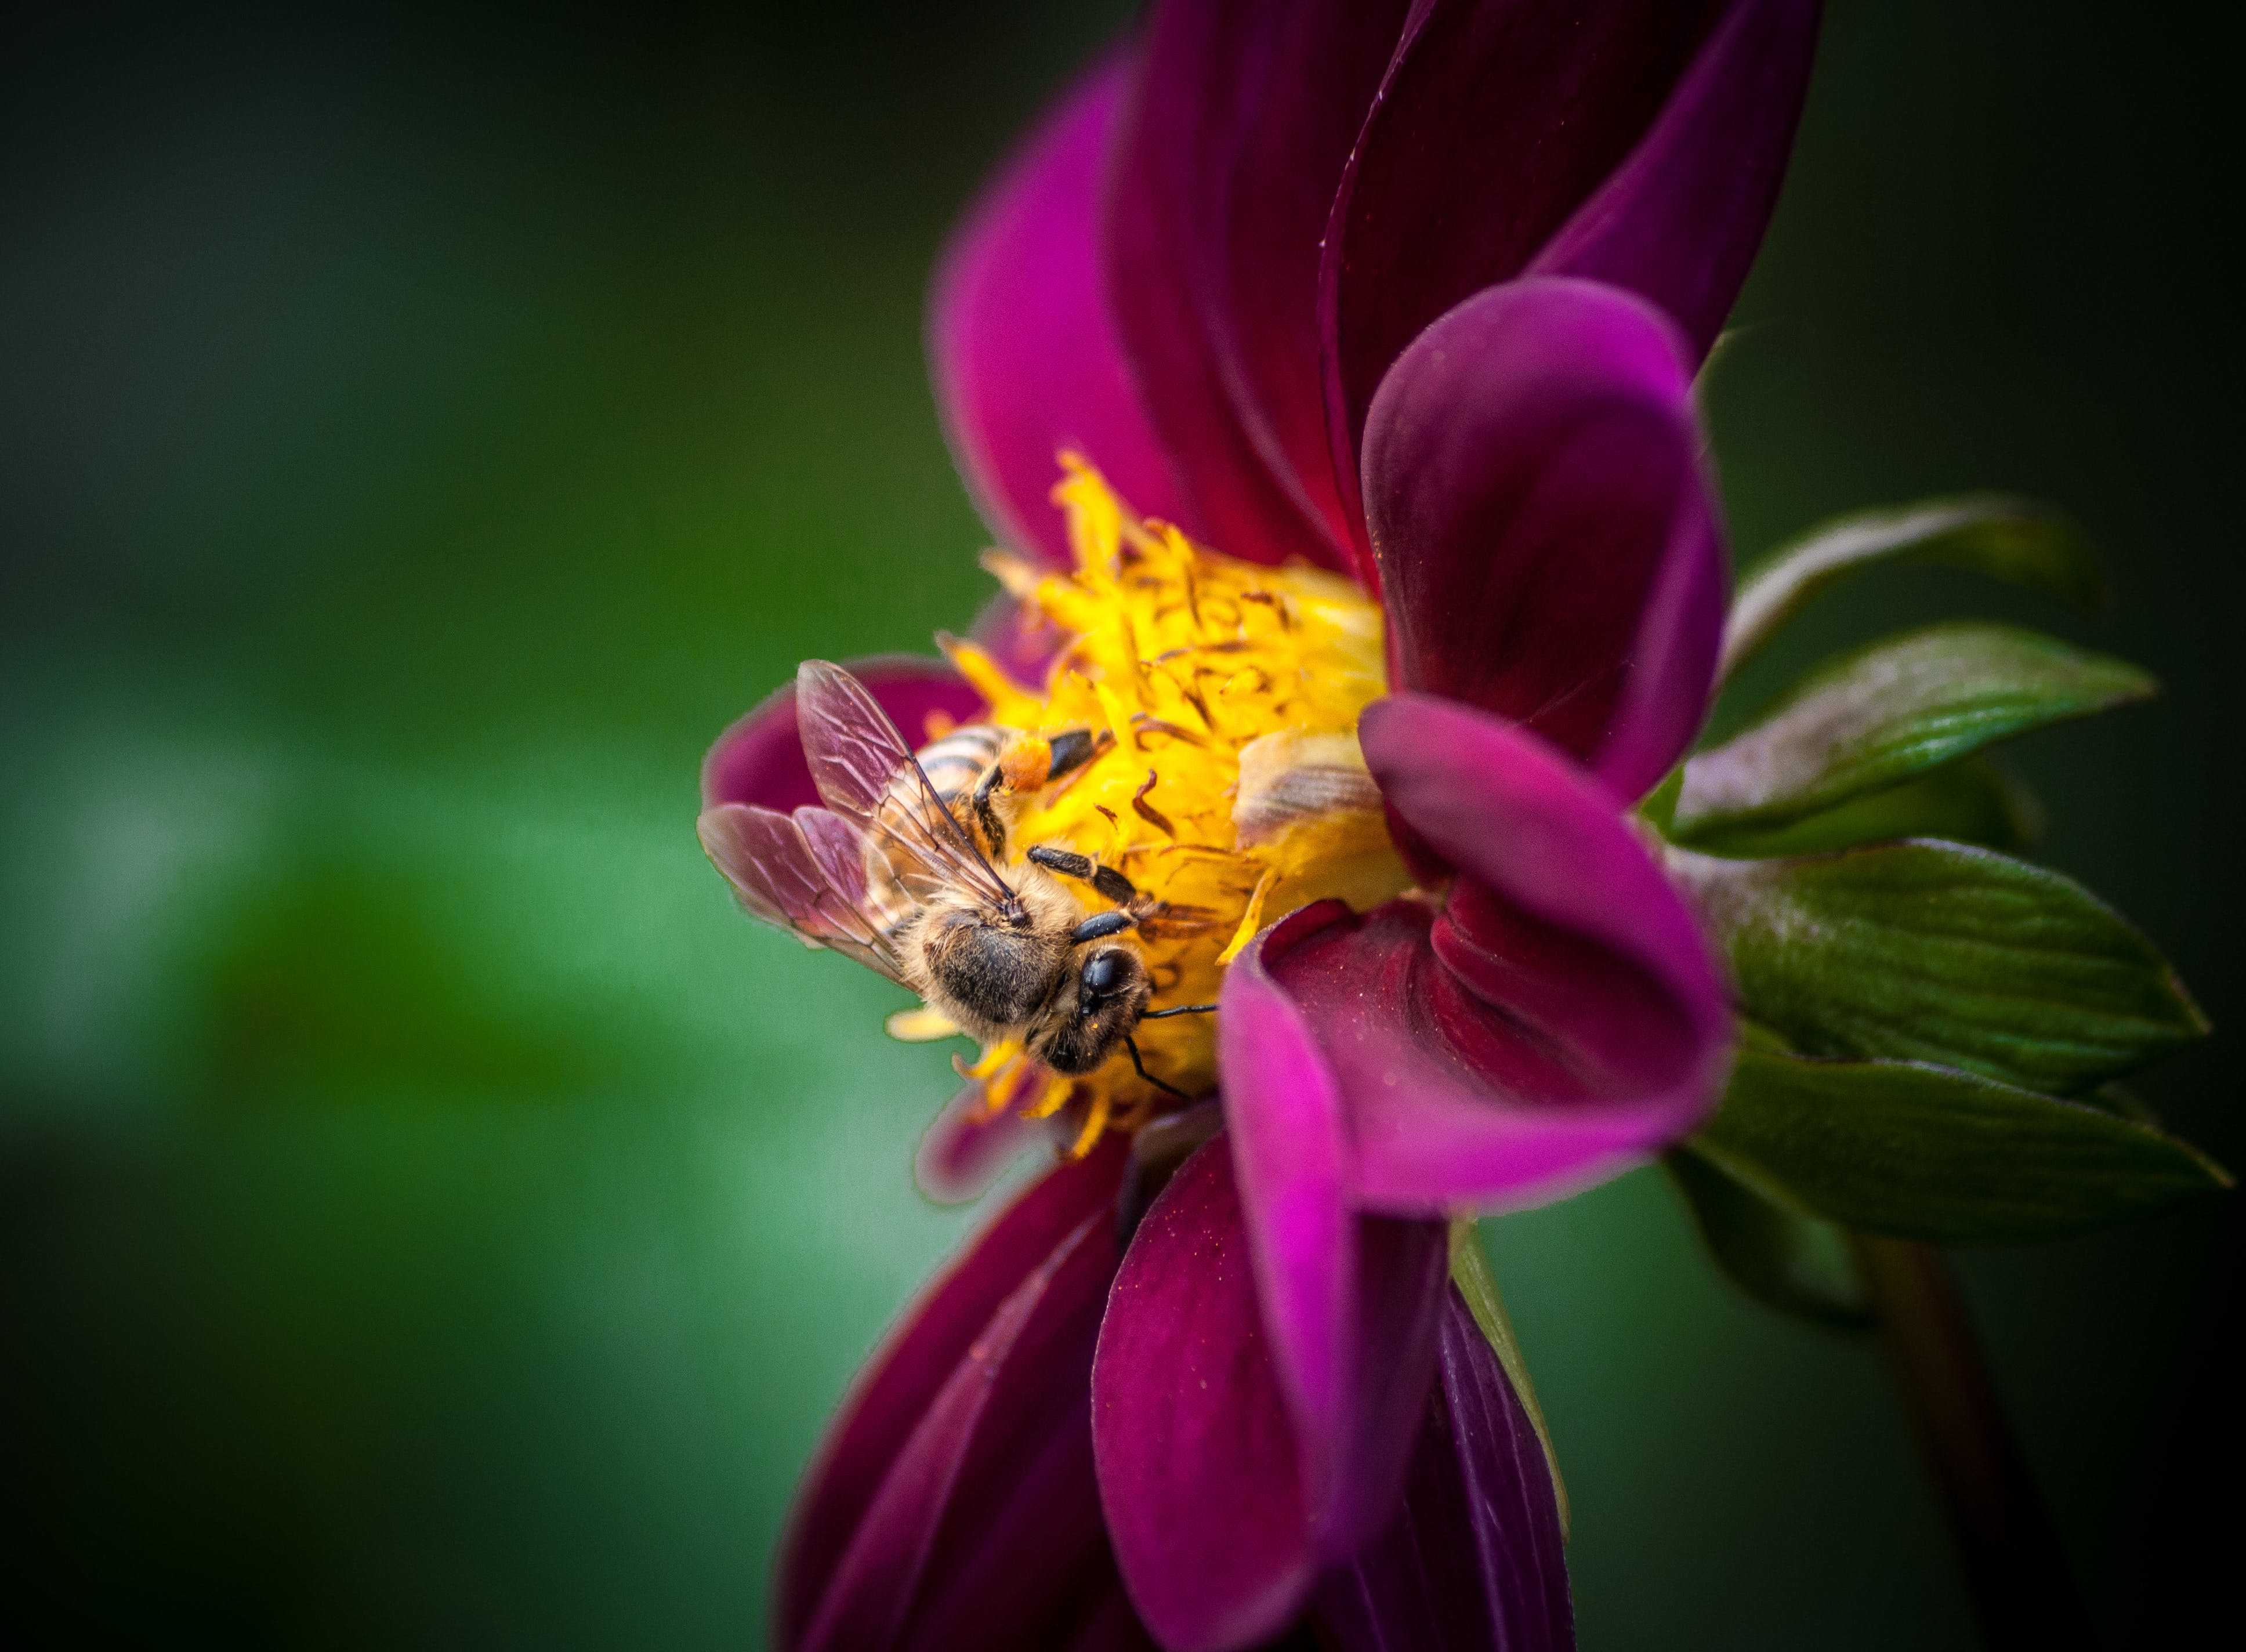 Closeup Photo of Bee on Pink and Yellow Petaled Flower